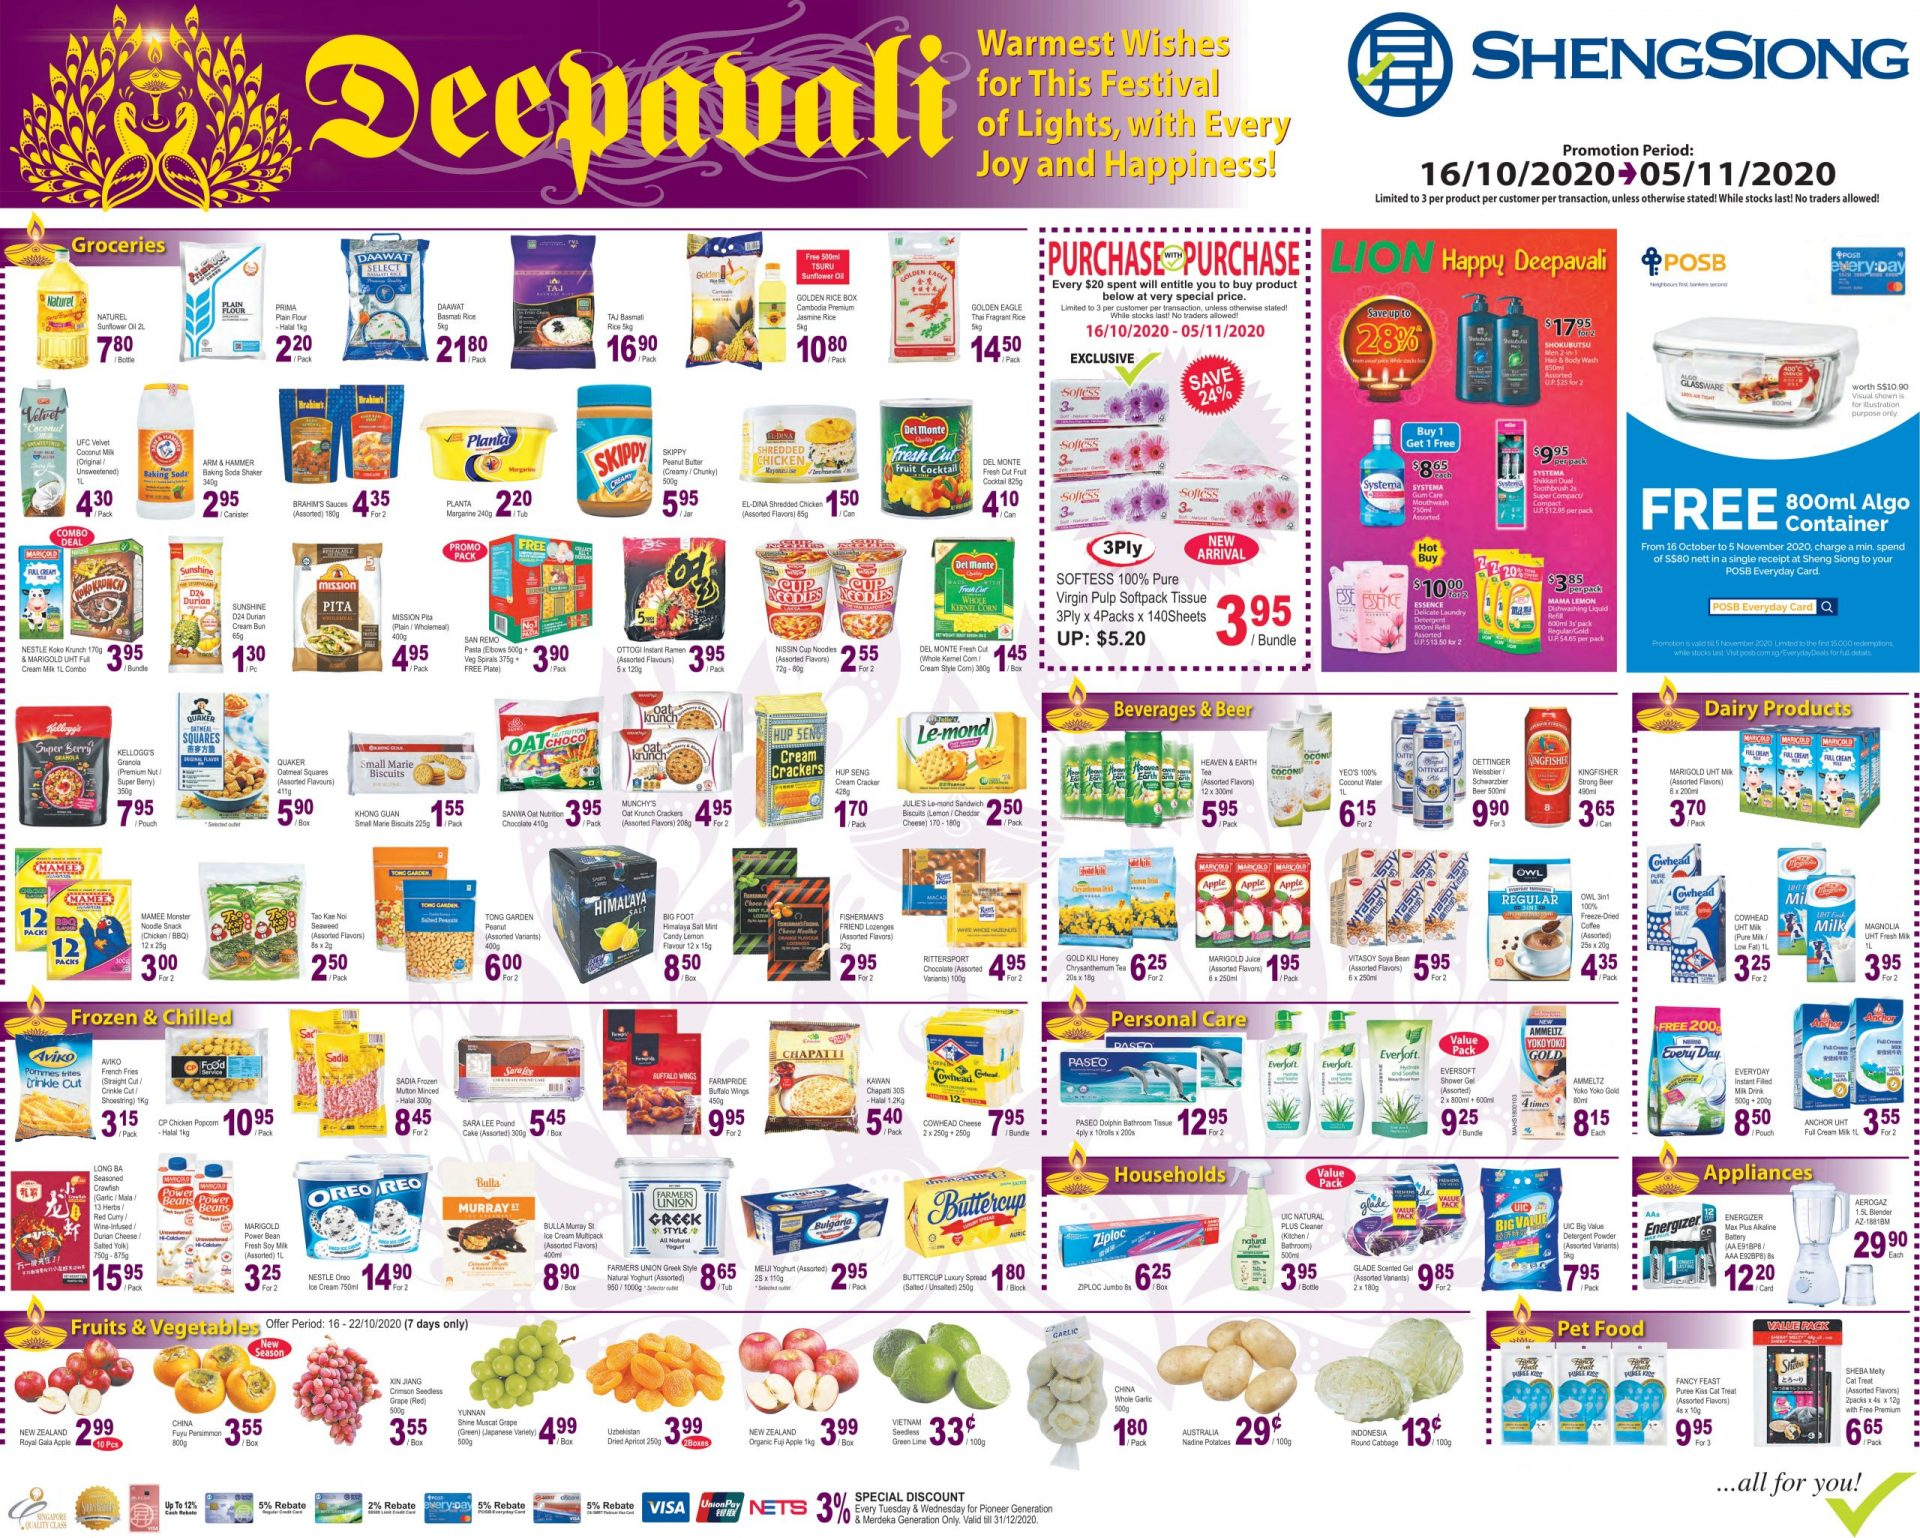 Deepavali Promotion 16 Oct 2020 – 05 Nov 2020